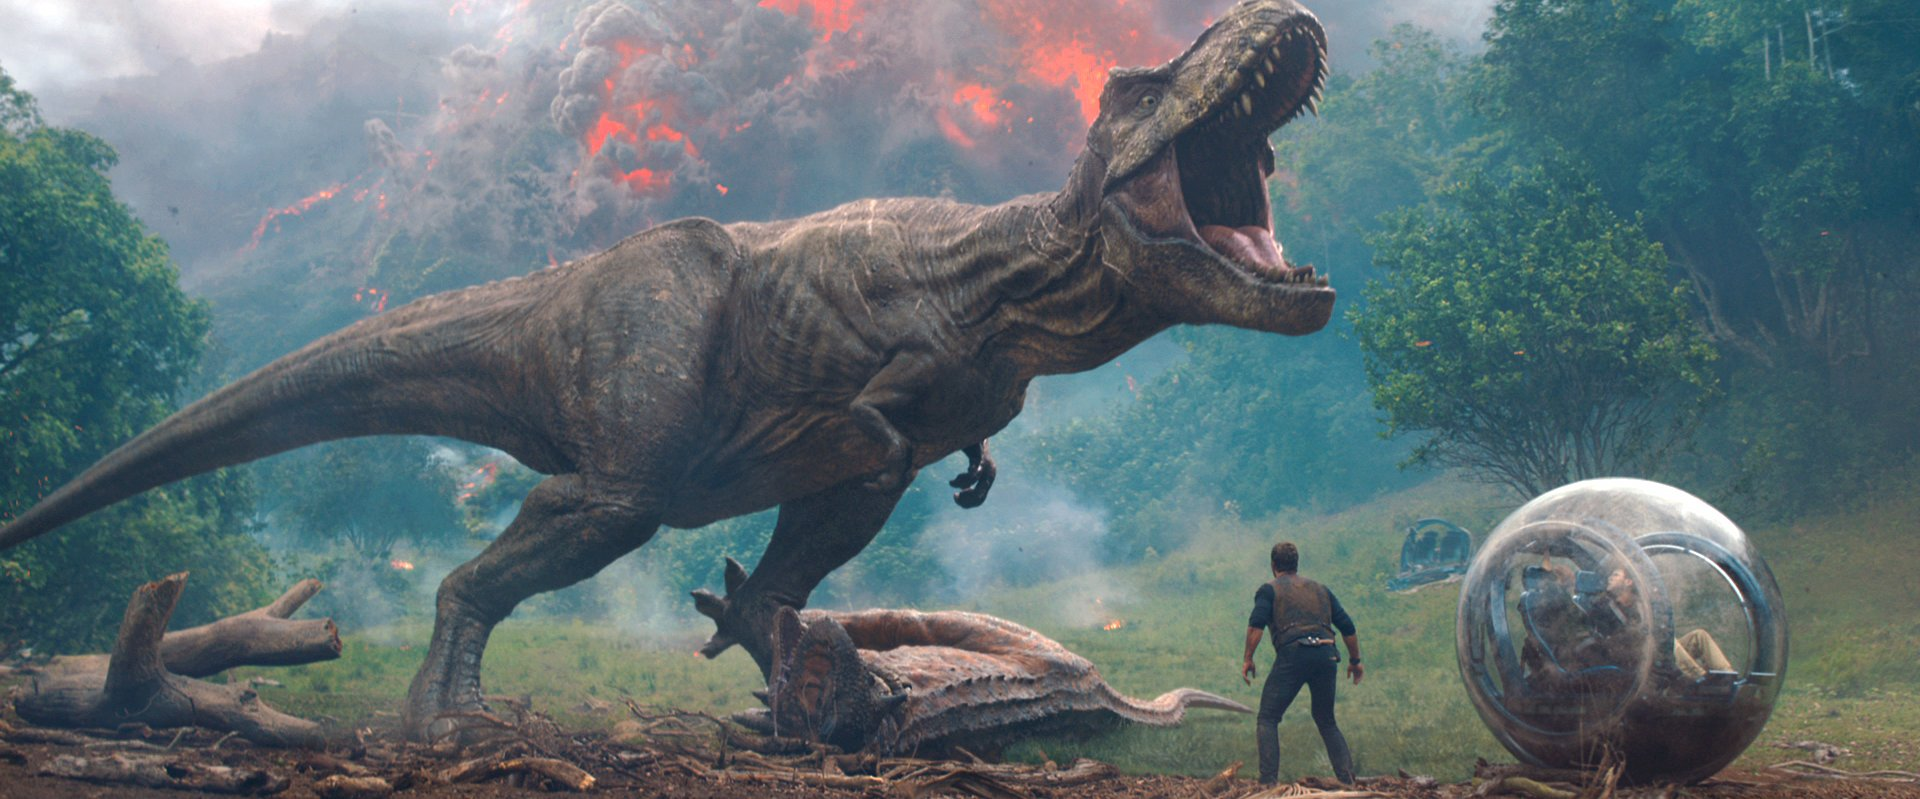 Still of T. Rex in Jurassic World: Fallen Kingdom